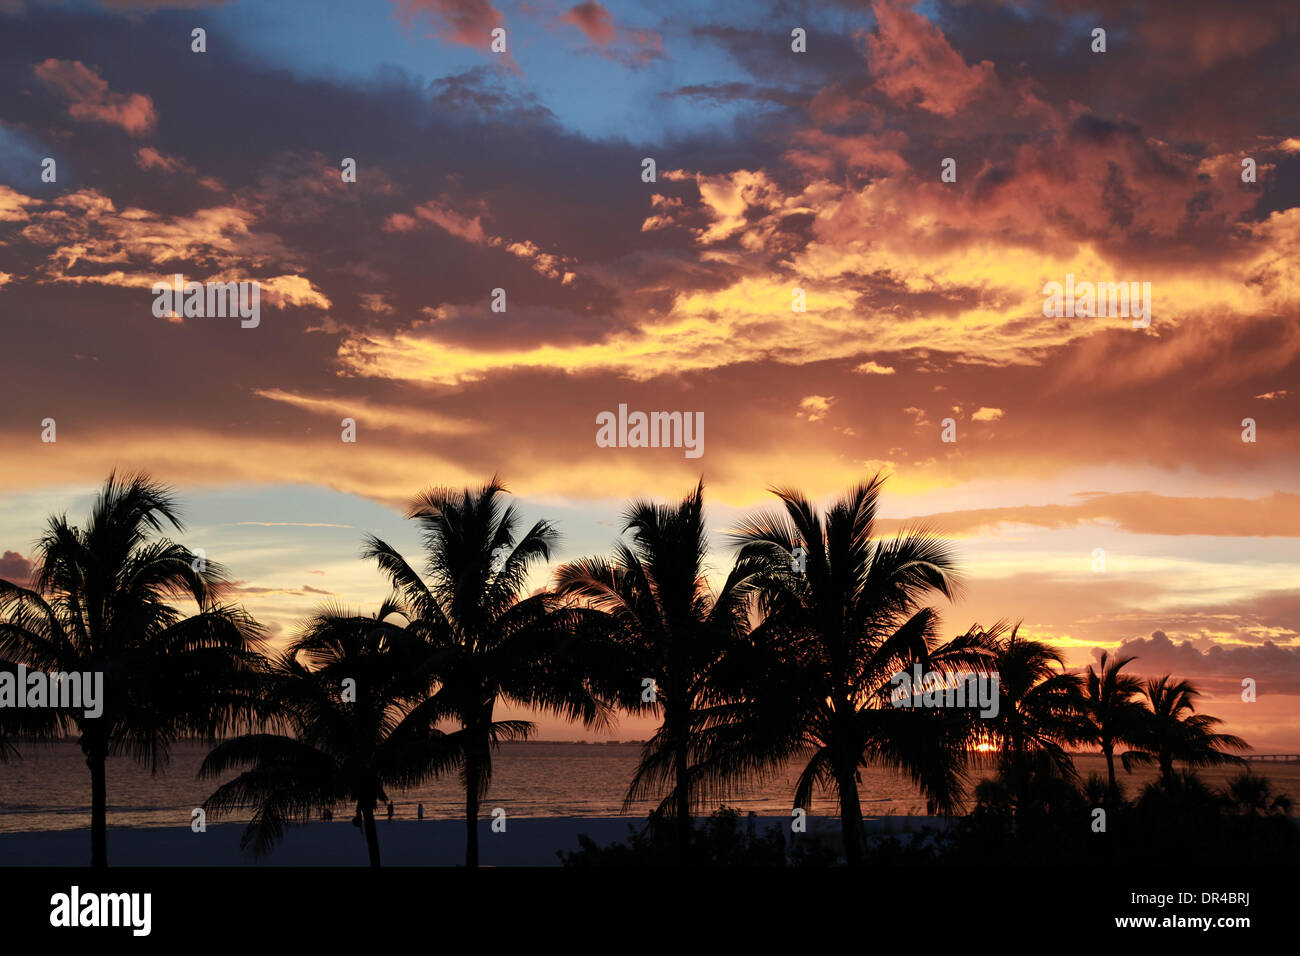 Fort Meyers, Florida, USA. 09th Aug, 2013. Silhouette of palm trees on Fort Meyers Beach at sunset. Located along Stock Photo